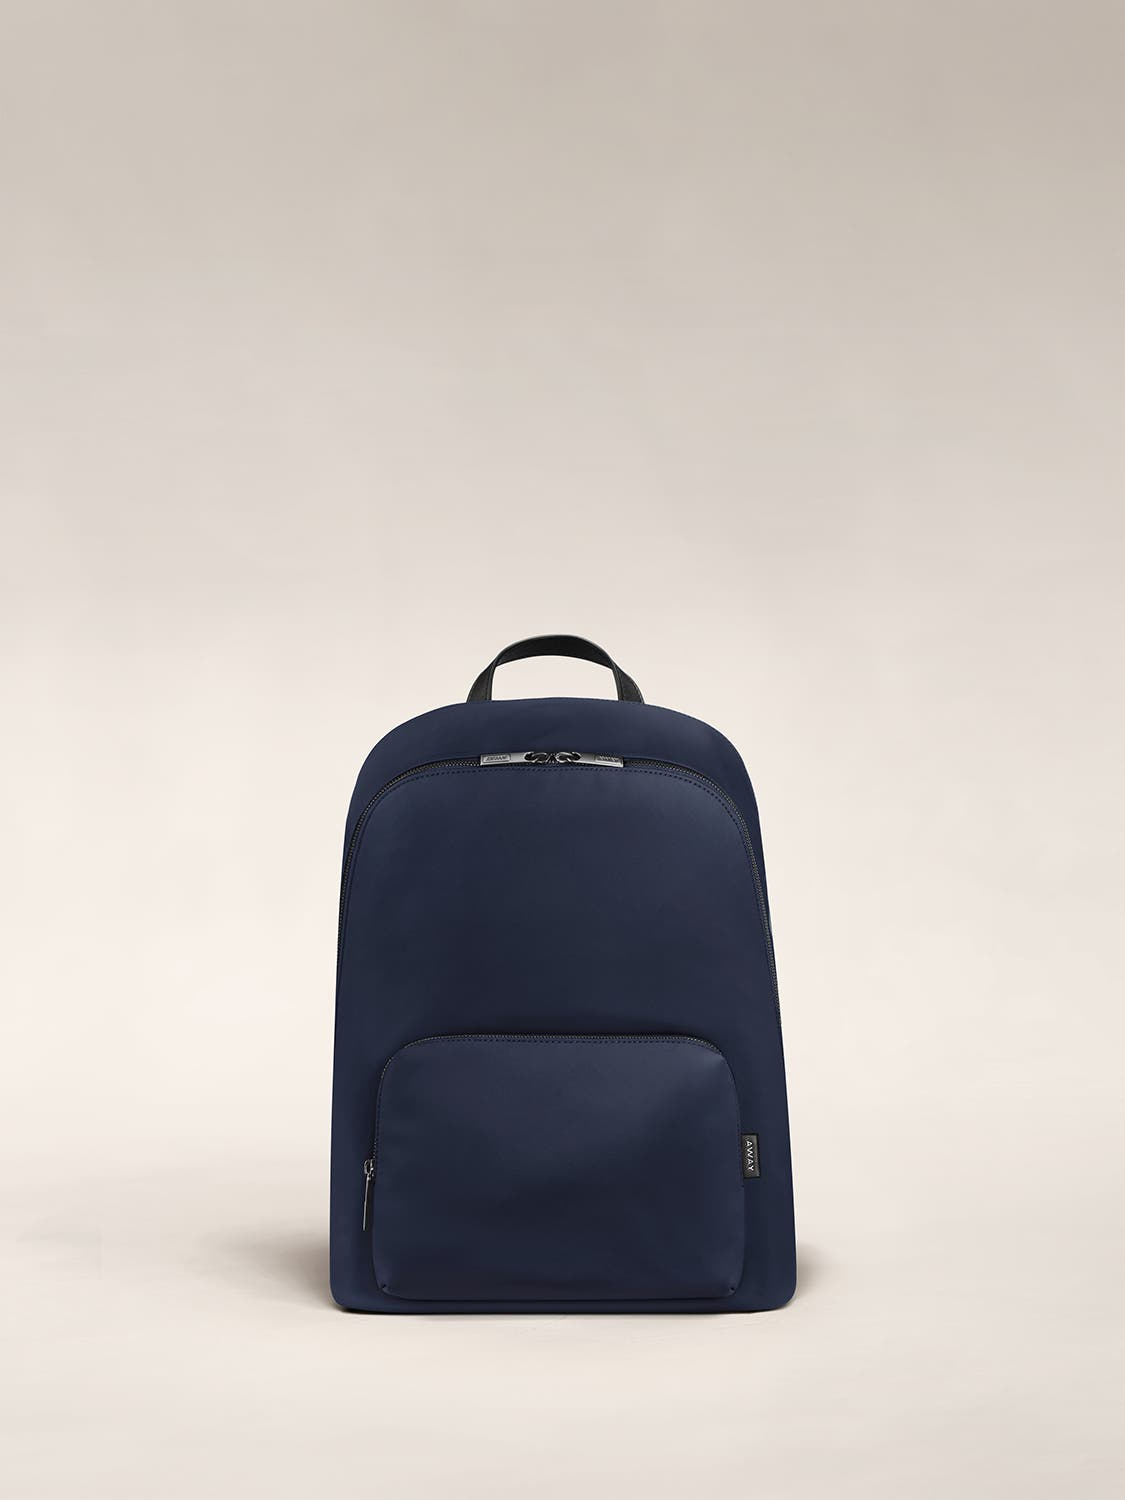 Front of a navy blue backpack with two pockets one main and one small with zip.